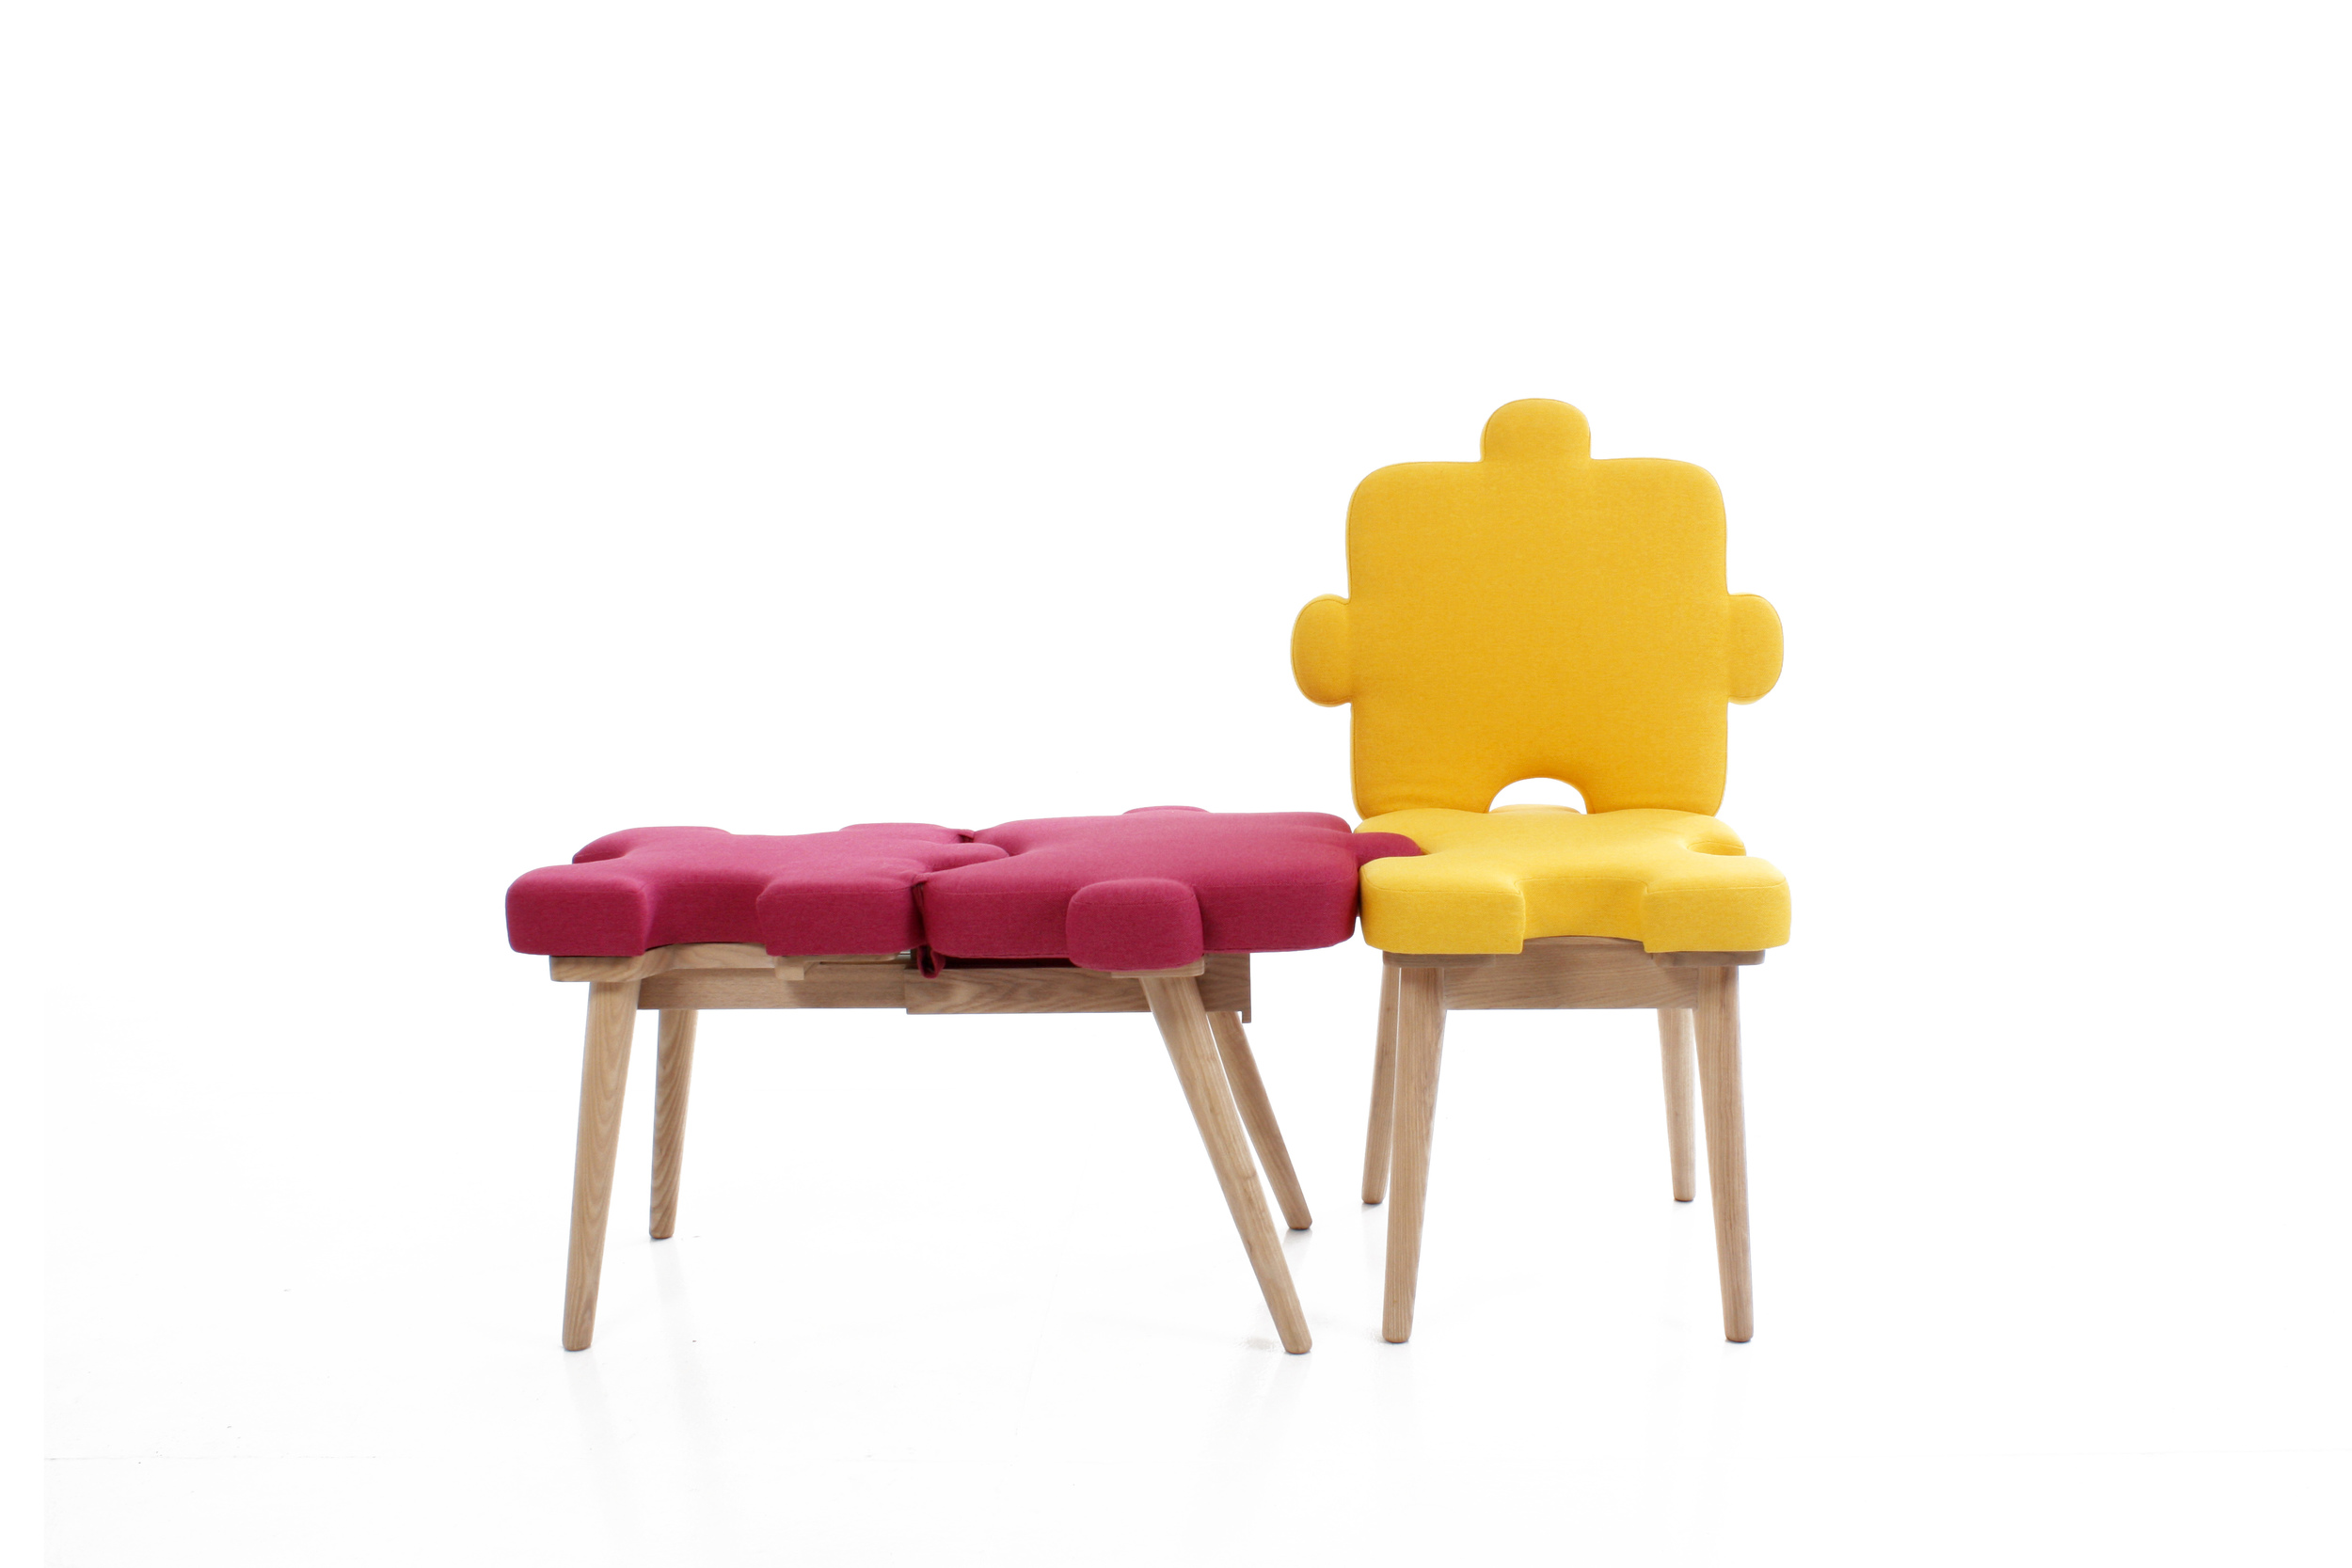 two chairs_1.jpg